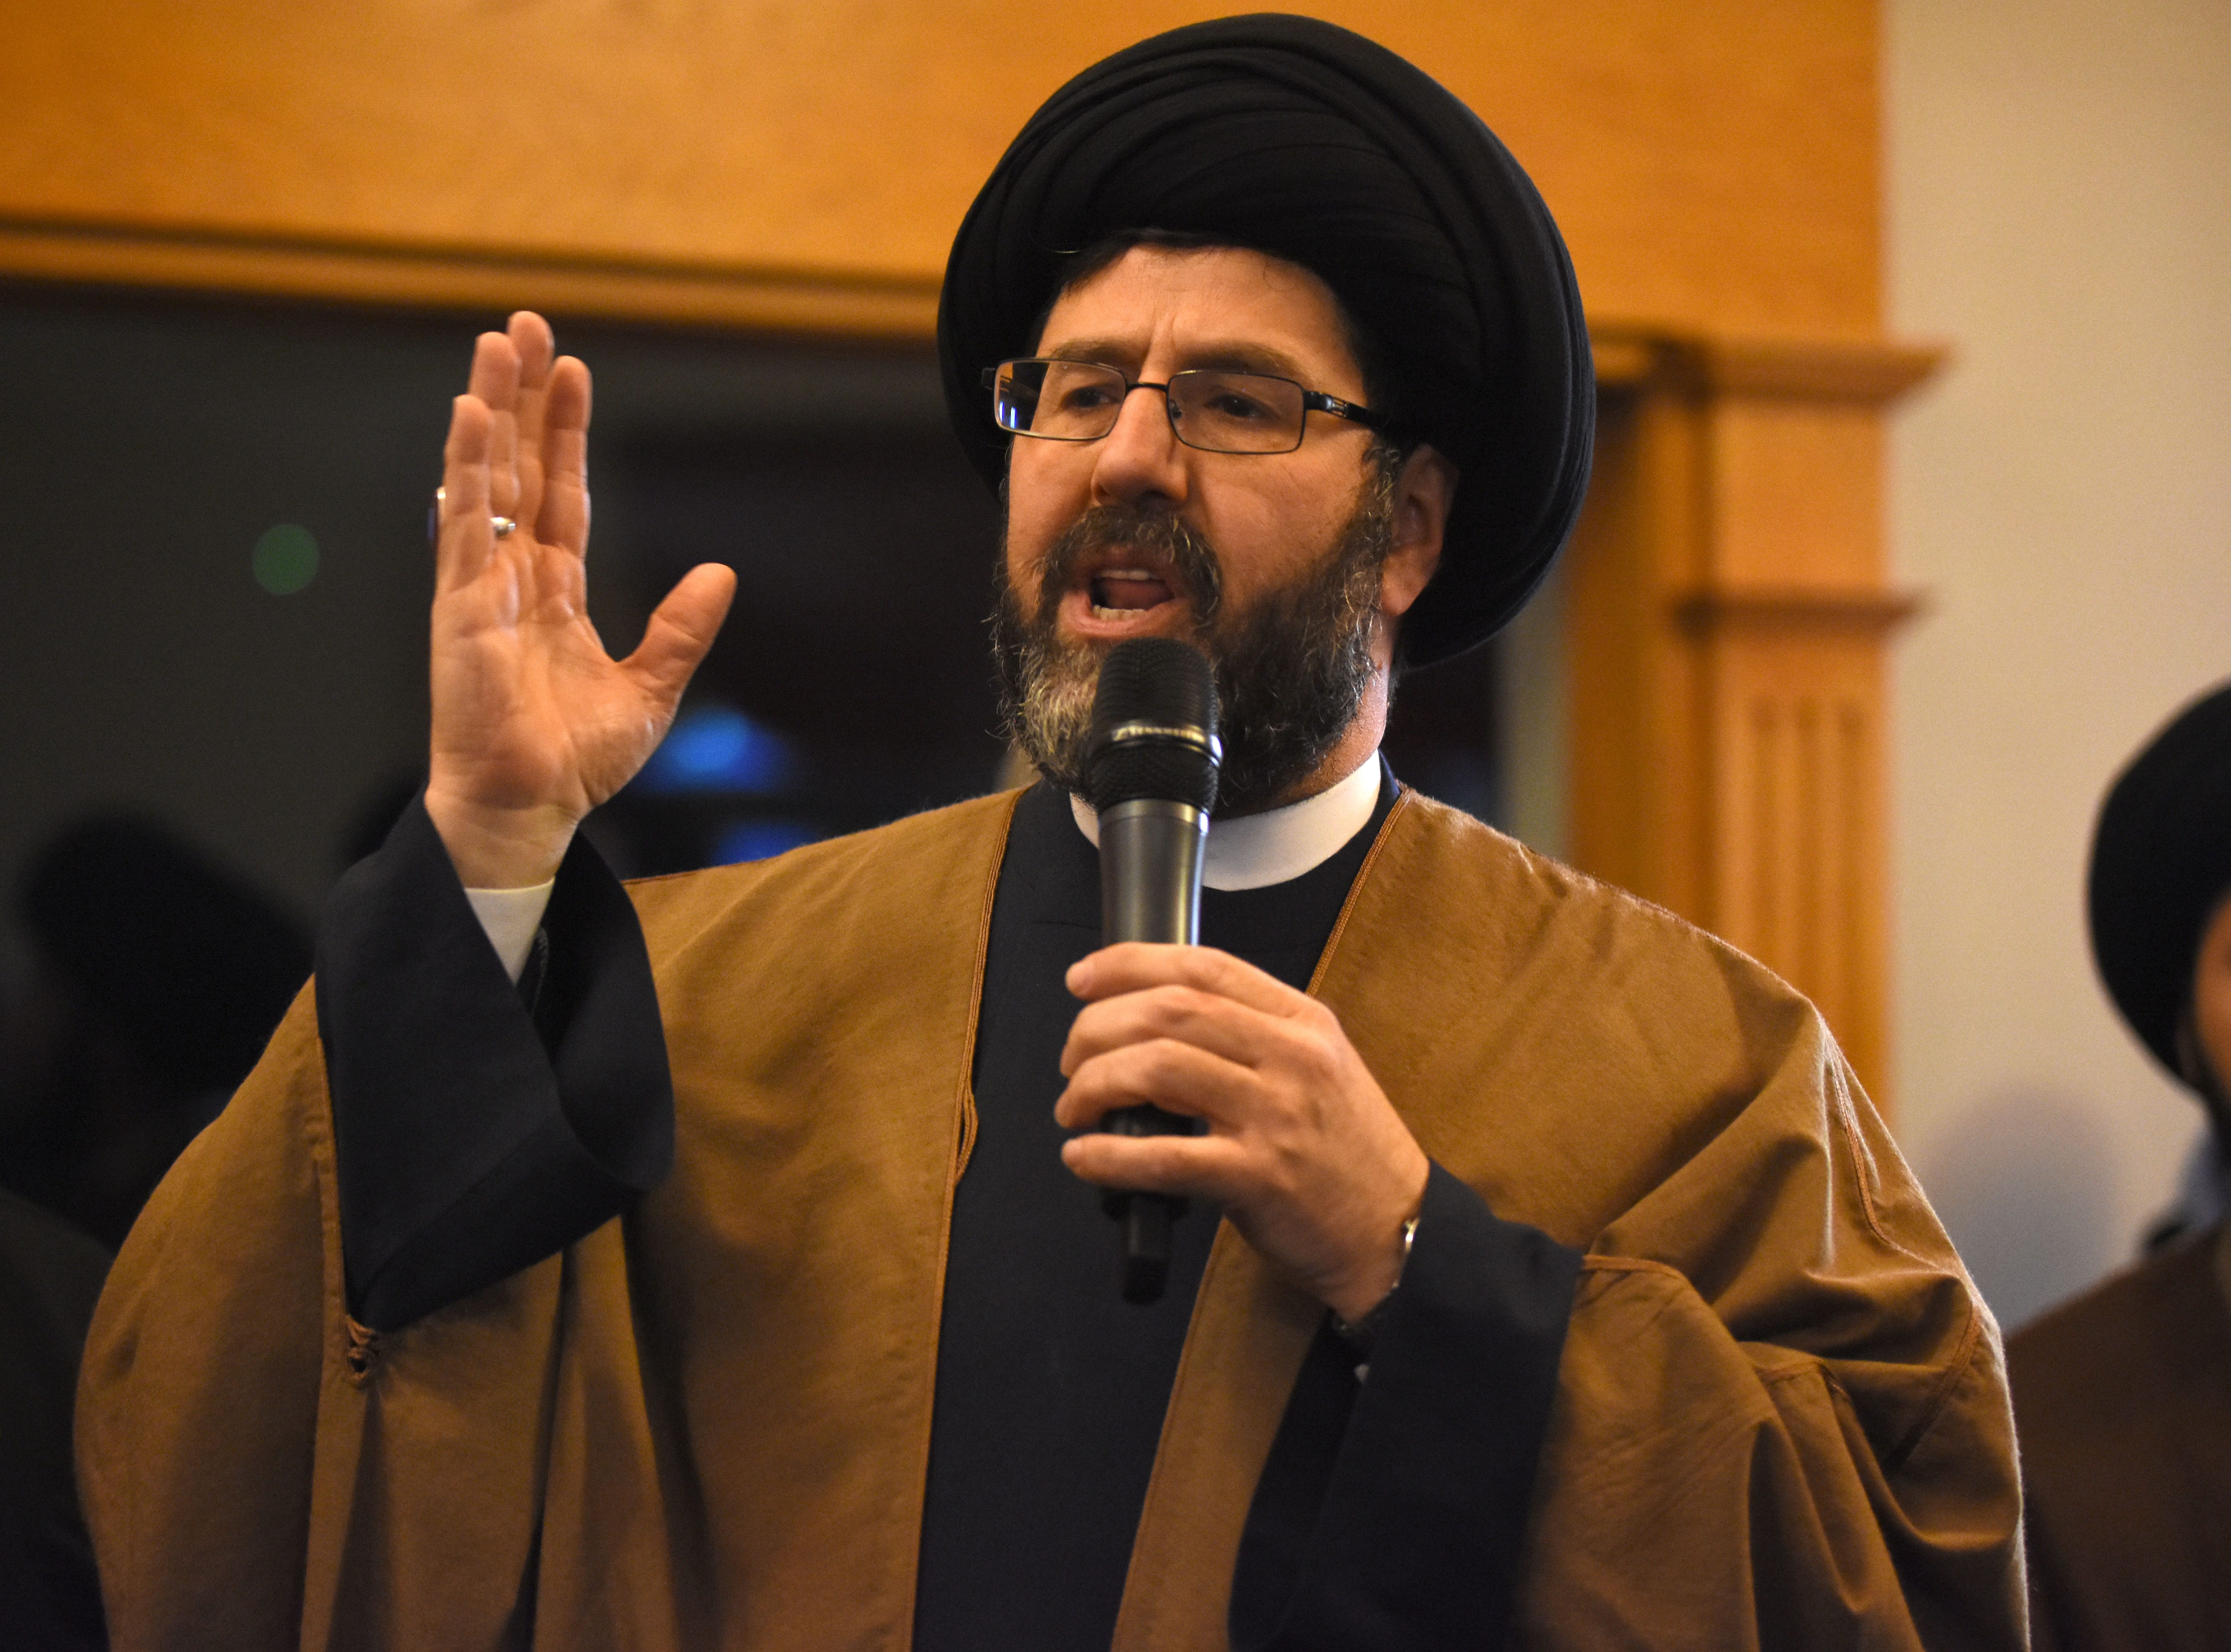 Sayed Hassan Qazwini speaks during a candle light prayer vigil at the Islamic Institute of America in Dearborn Heights Friday.